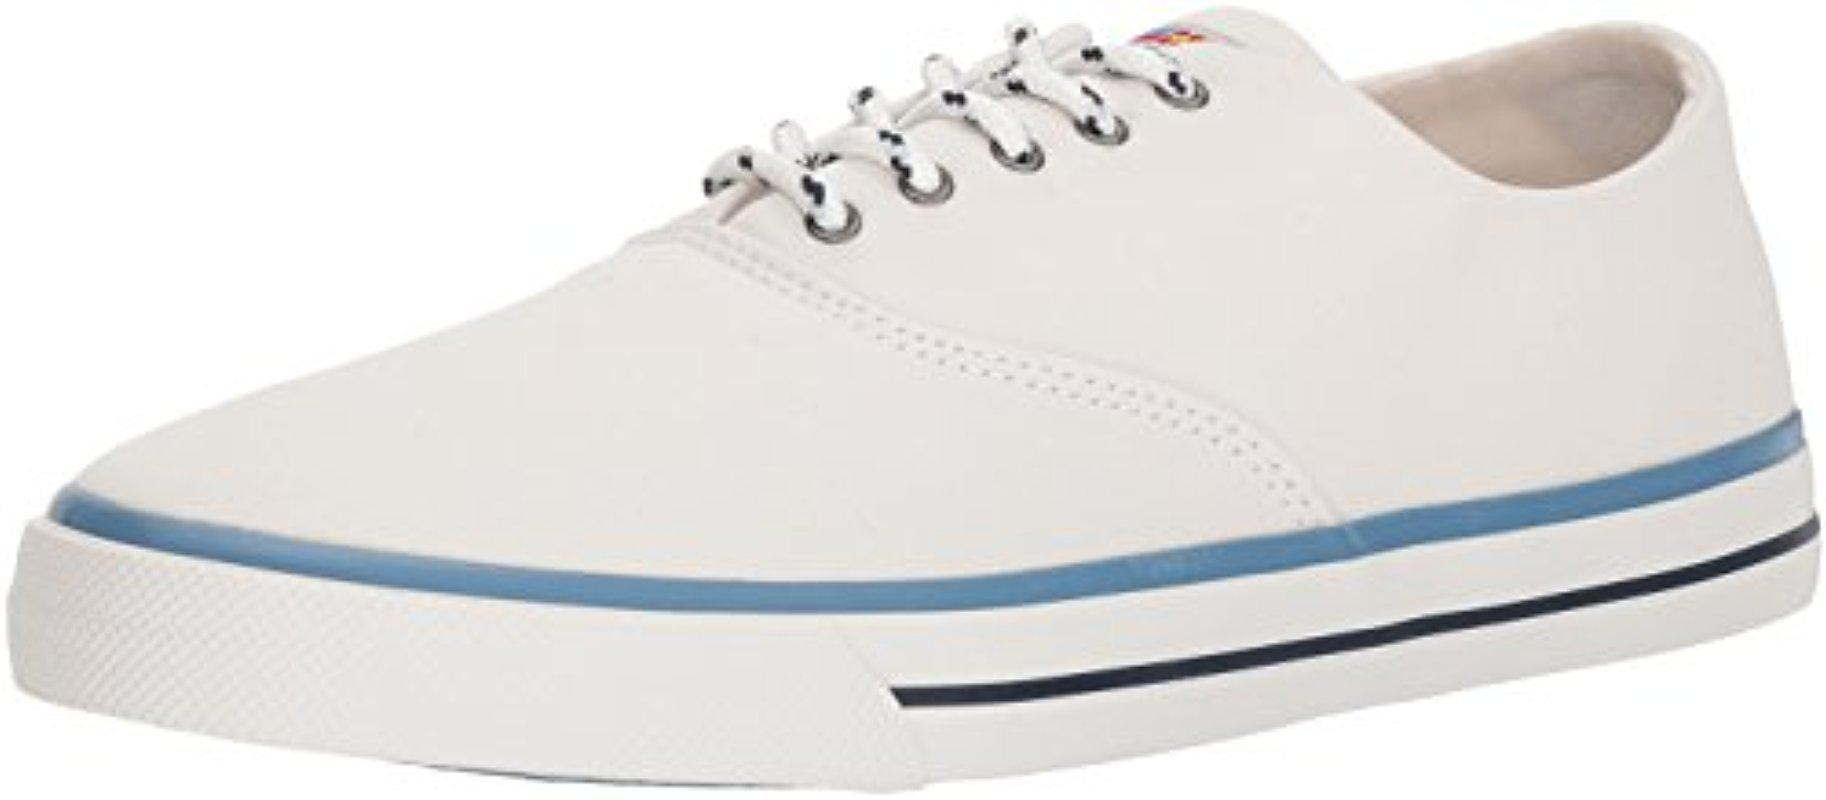 Captains CVO Nautical - FOOTWEAR - Low-tops & sneakers Sperry Top-Sider kkKzlUc